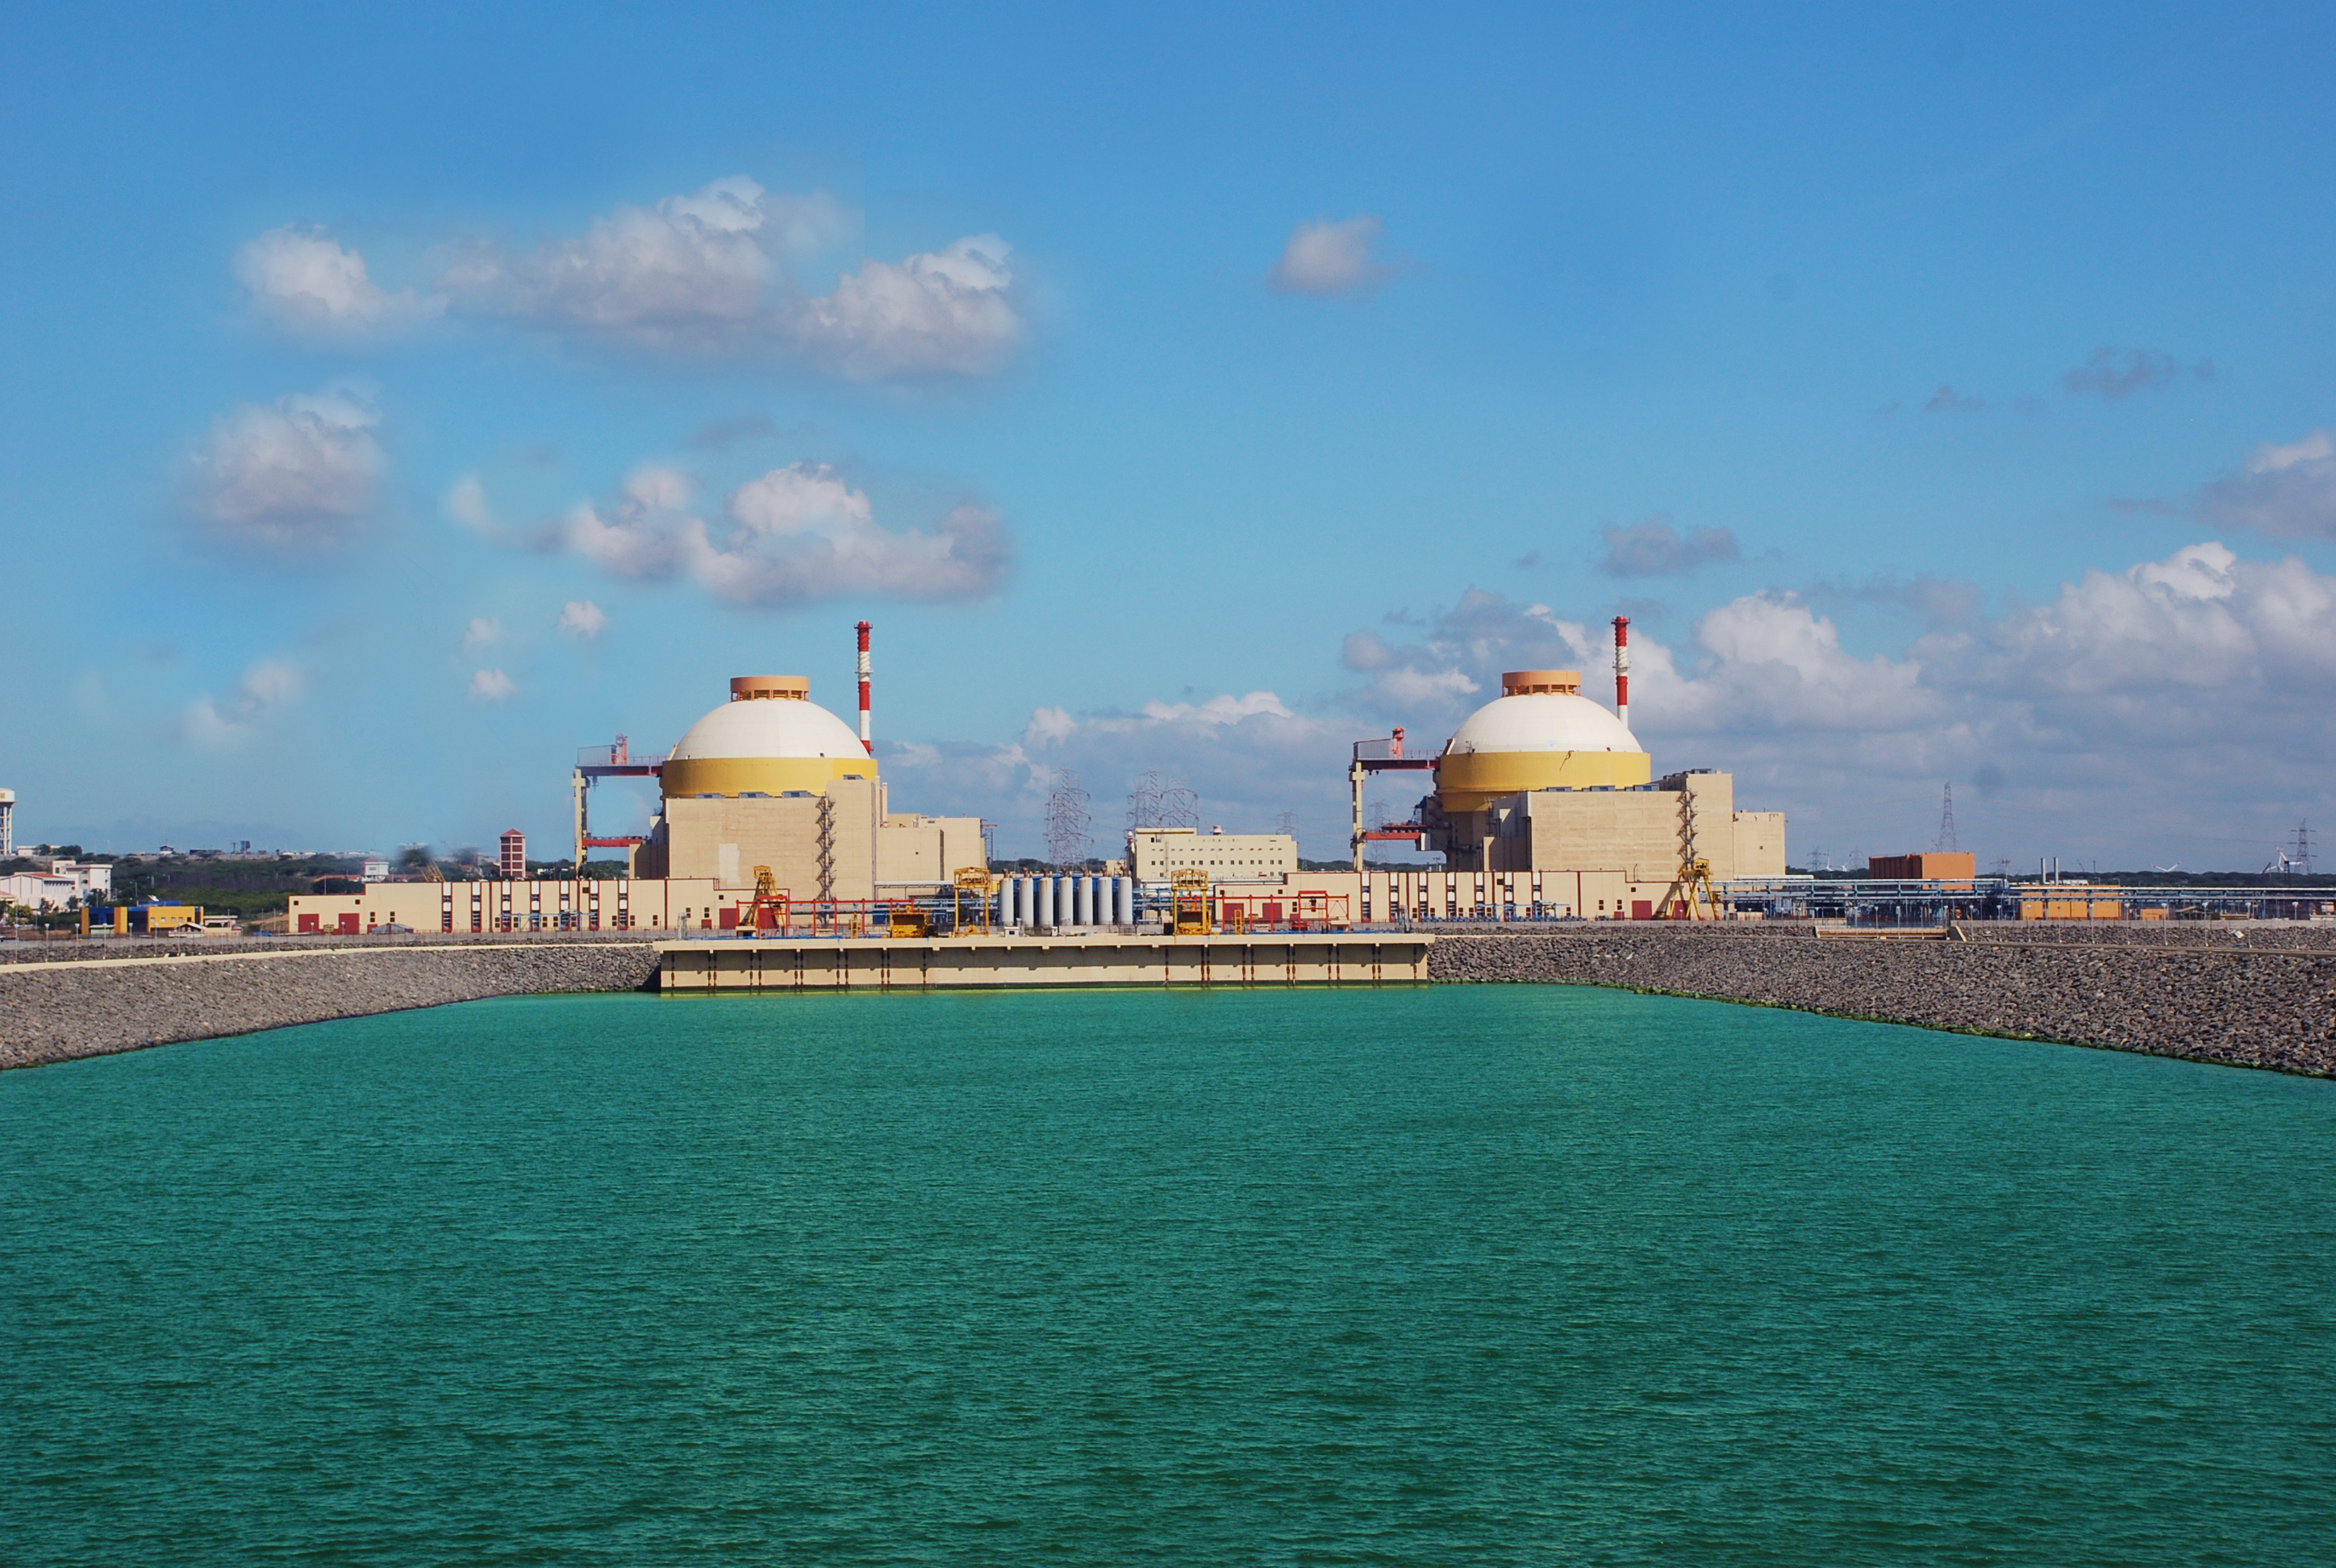 ASE Group of Companies and Nuclear Power Corporation of India Ltd. signed an agreement on the third stage of Kudankulam NPP construction